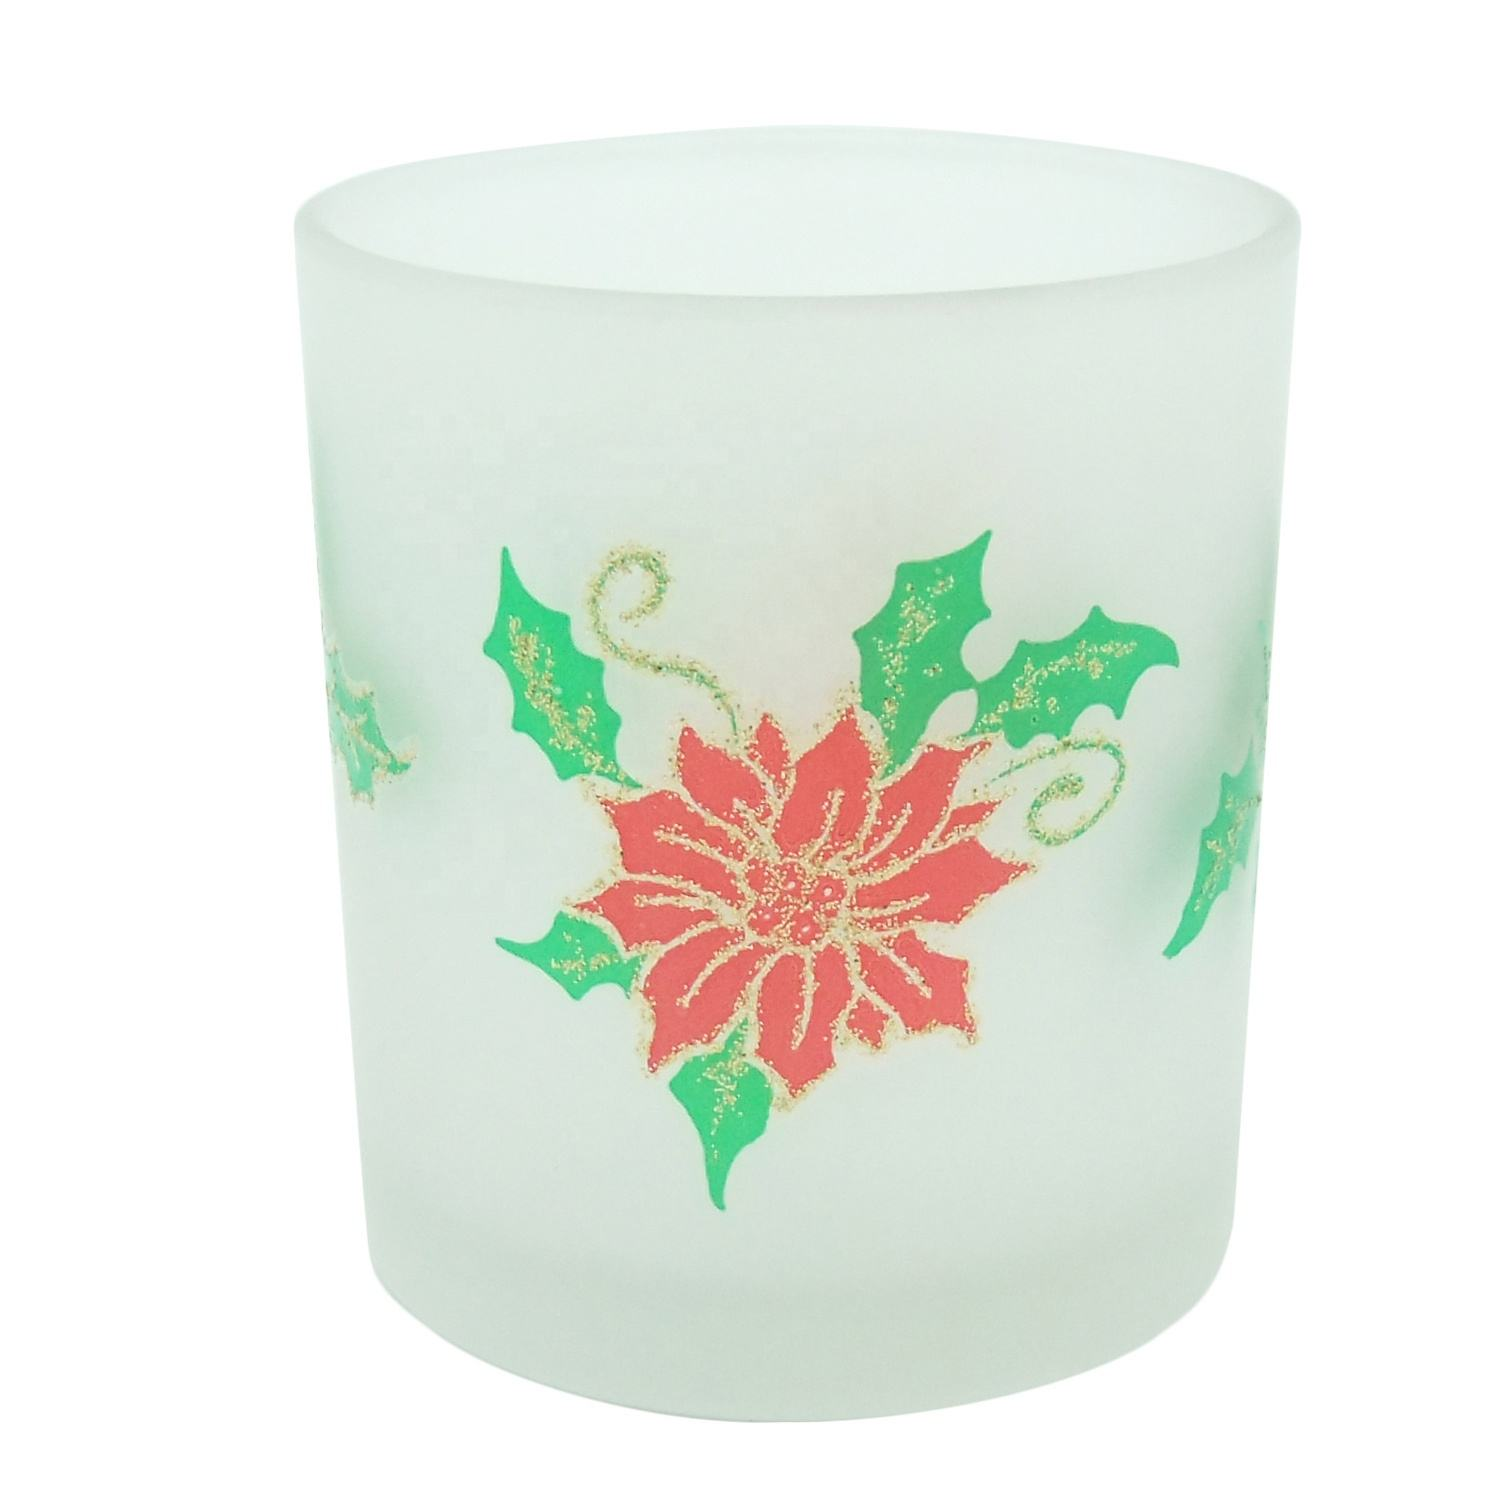 8oz frosted candle glass jars flower decorative votive candle holders for Christmas Haodexin